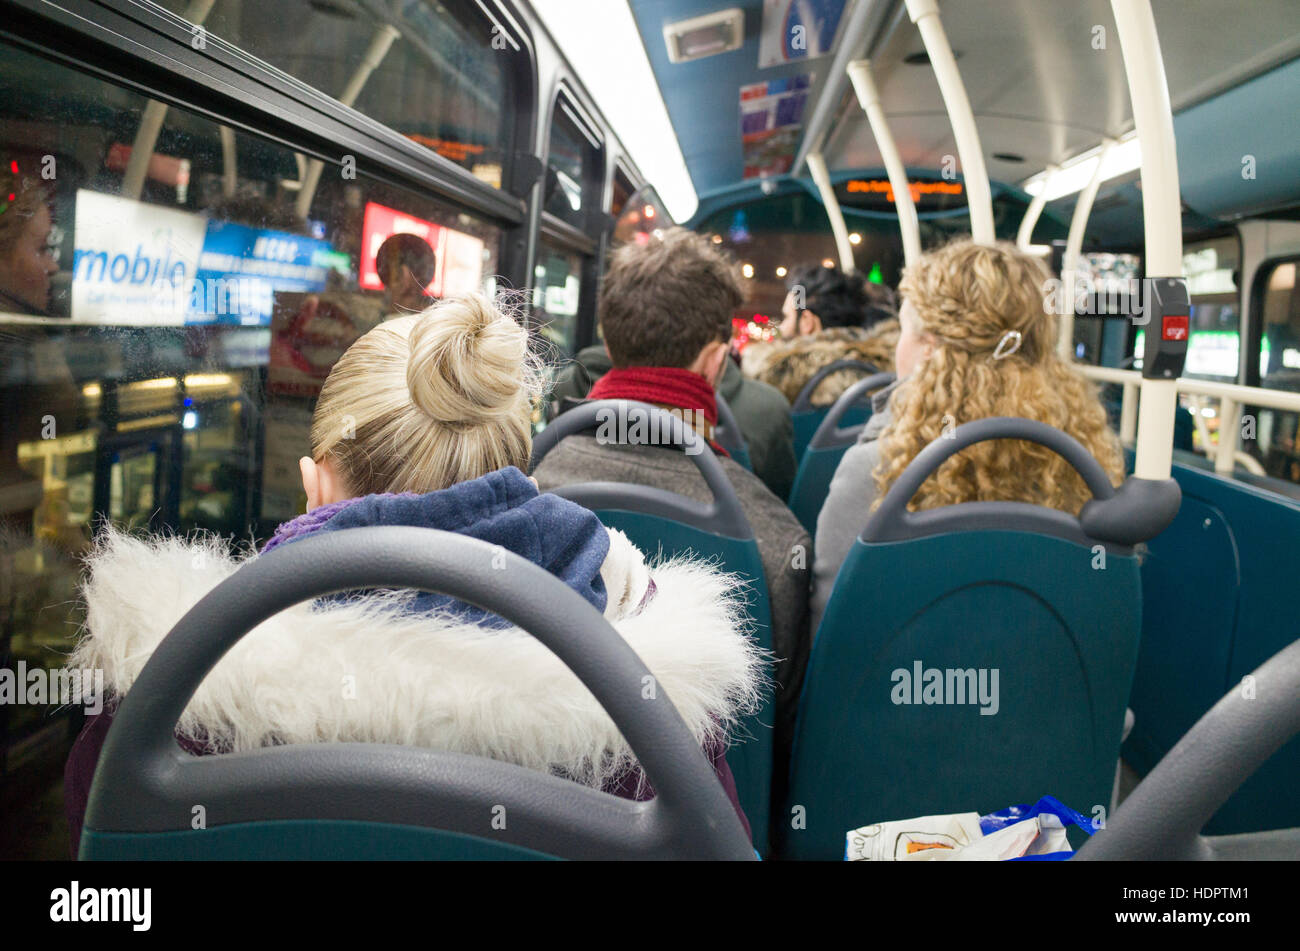 Bus passengers on the top deck of a night bus, London, England, UK - Stock Image